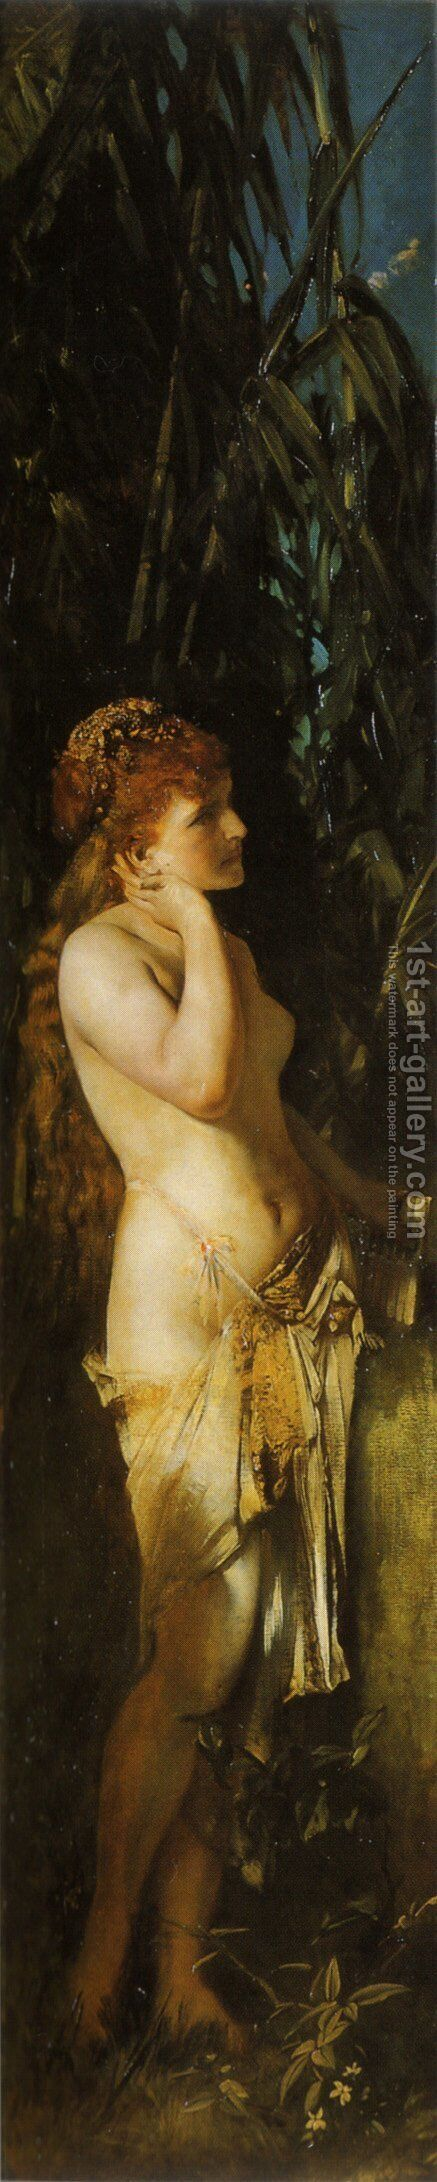 Die Fünf Sinne: Gehör (The Five Senses: Hearing) by Hans Makart - Reproduction Oil Painting